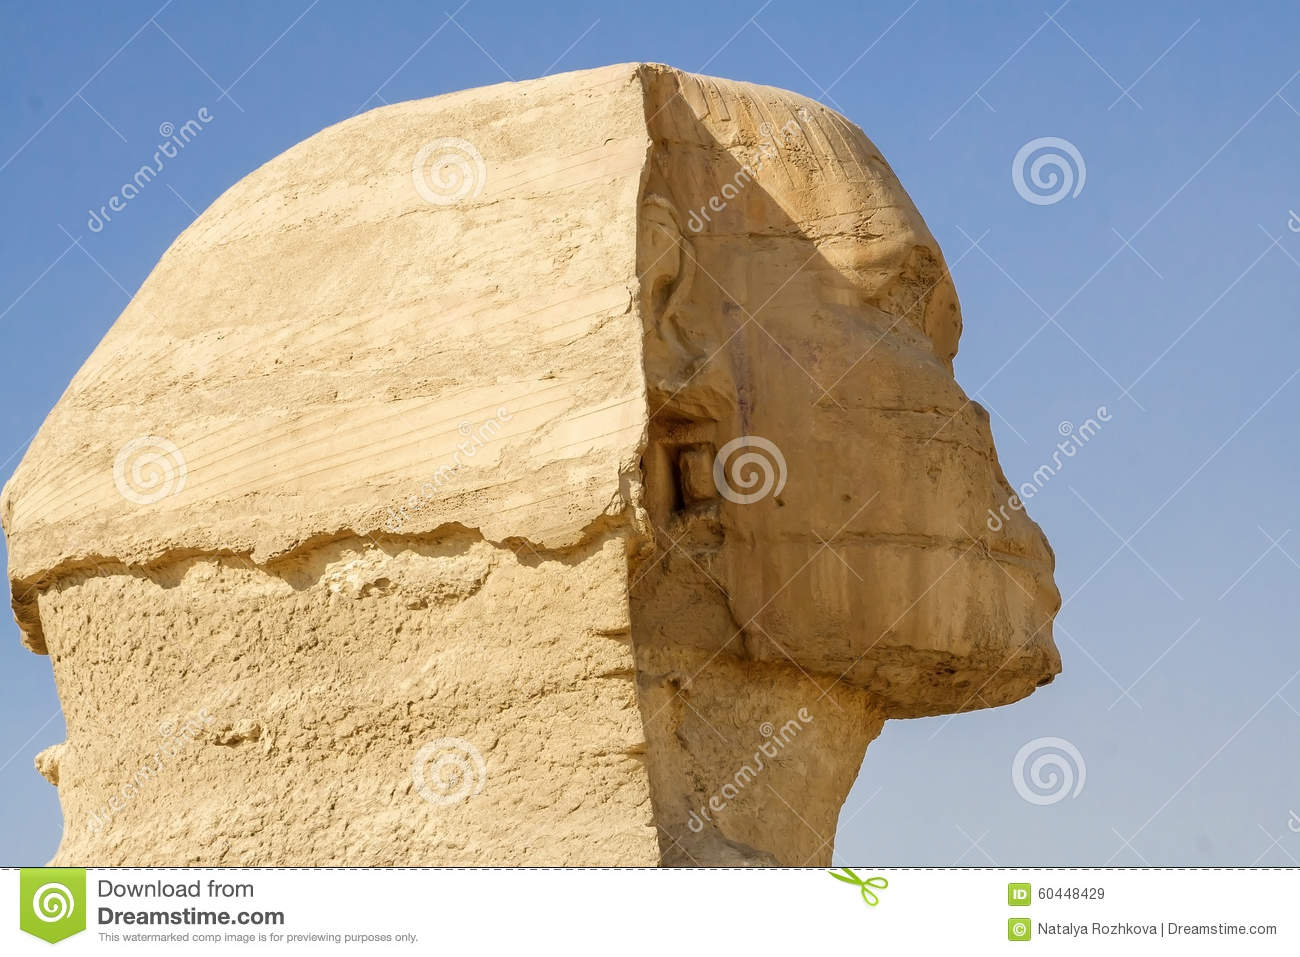 """pharaonic civilization Start by marking """"origins of the sphinx: celestial guardian of pre-pharaonic civilization"""" as want to read."""